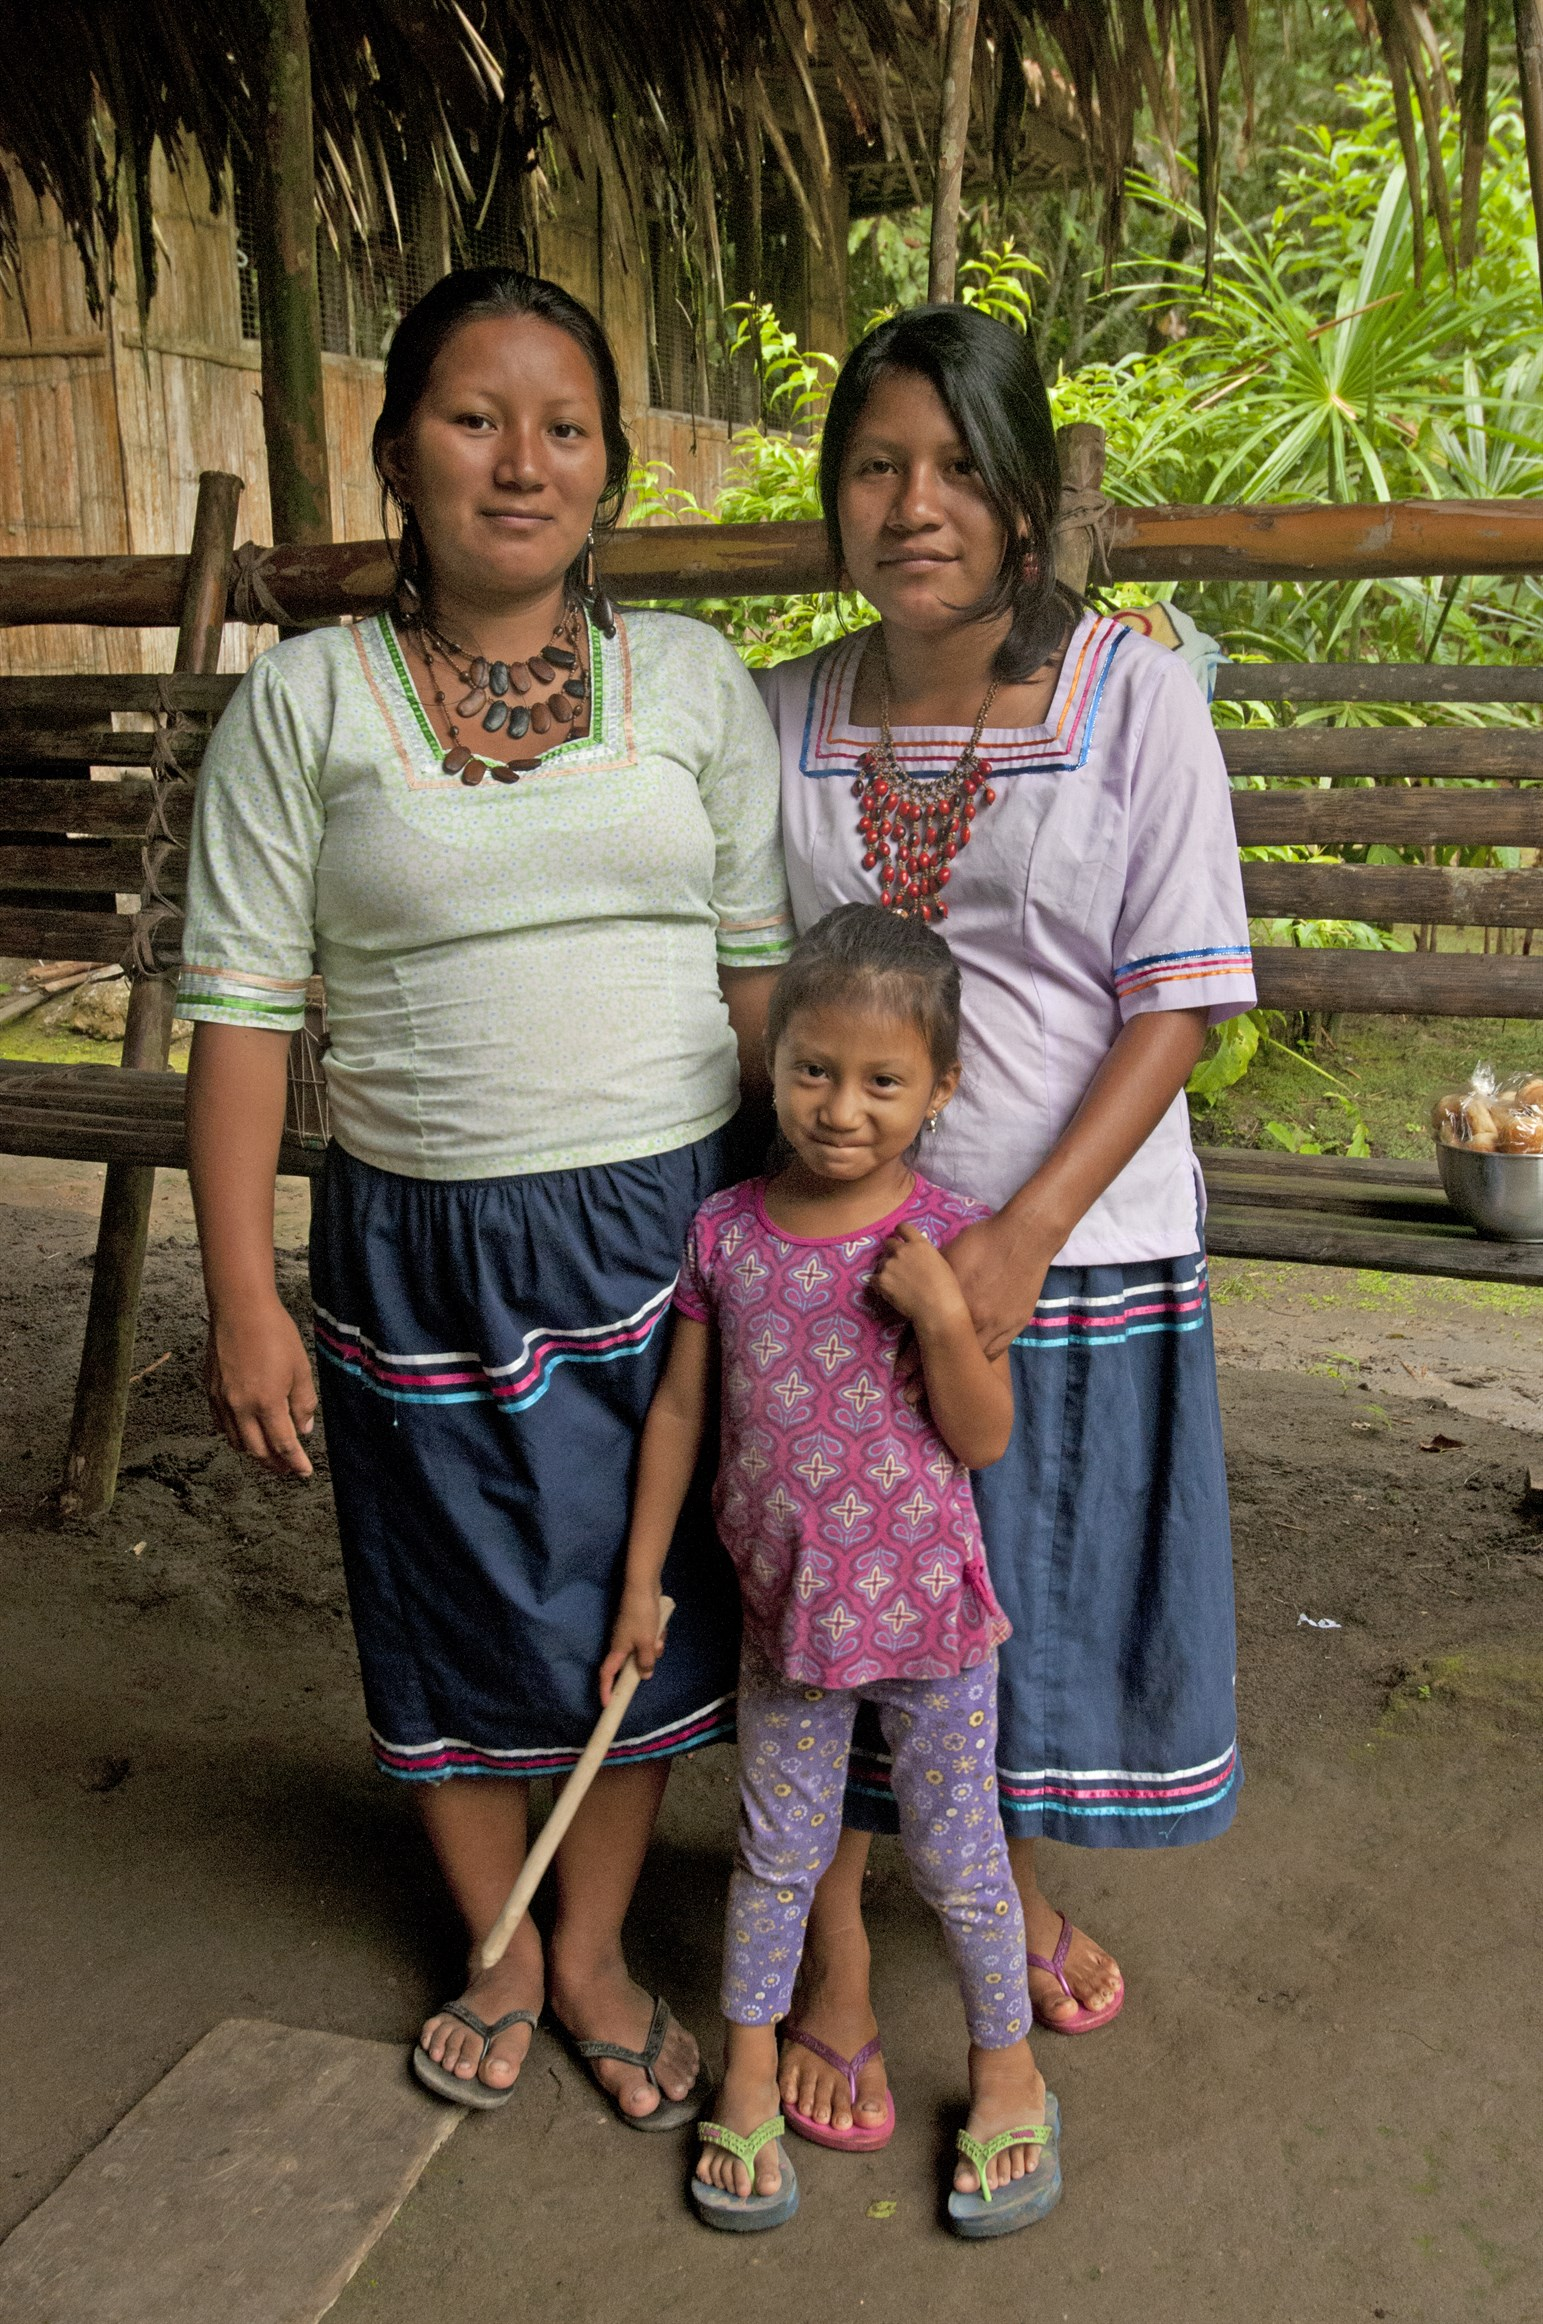 Kichua People of the Añangu community